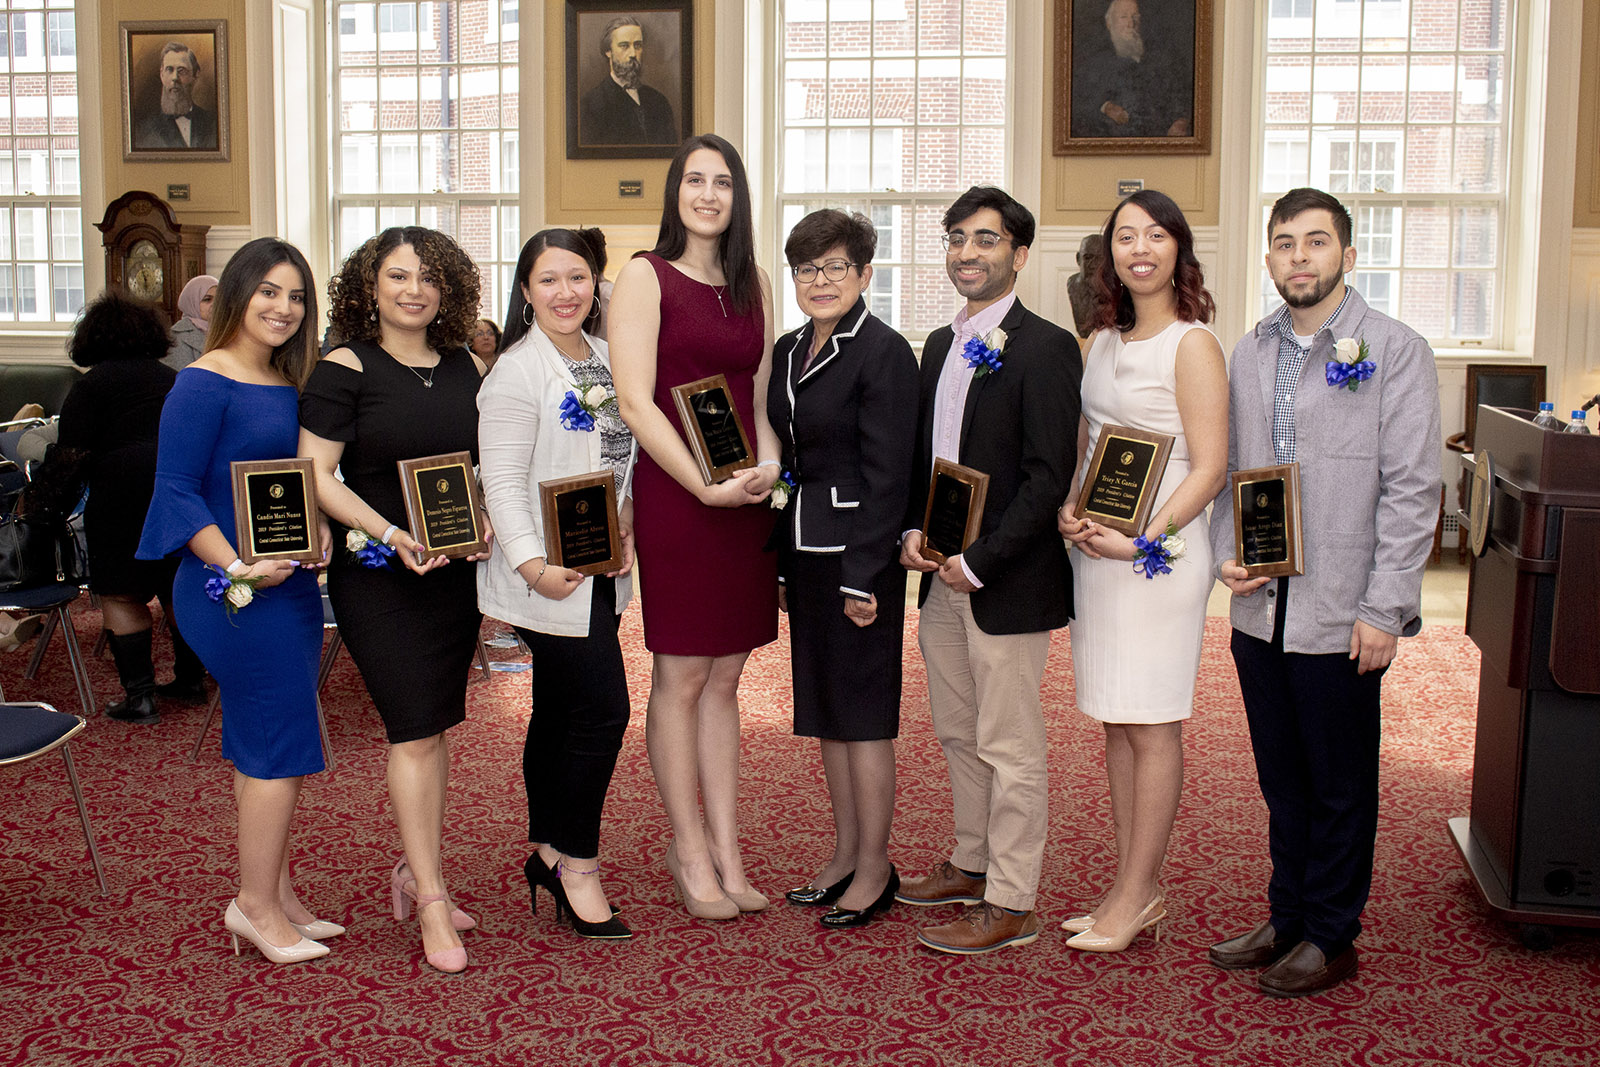 Seven students earn President's Citation Award